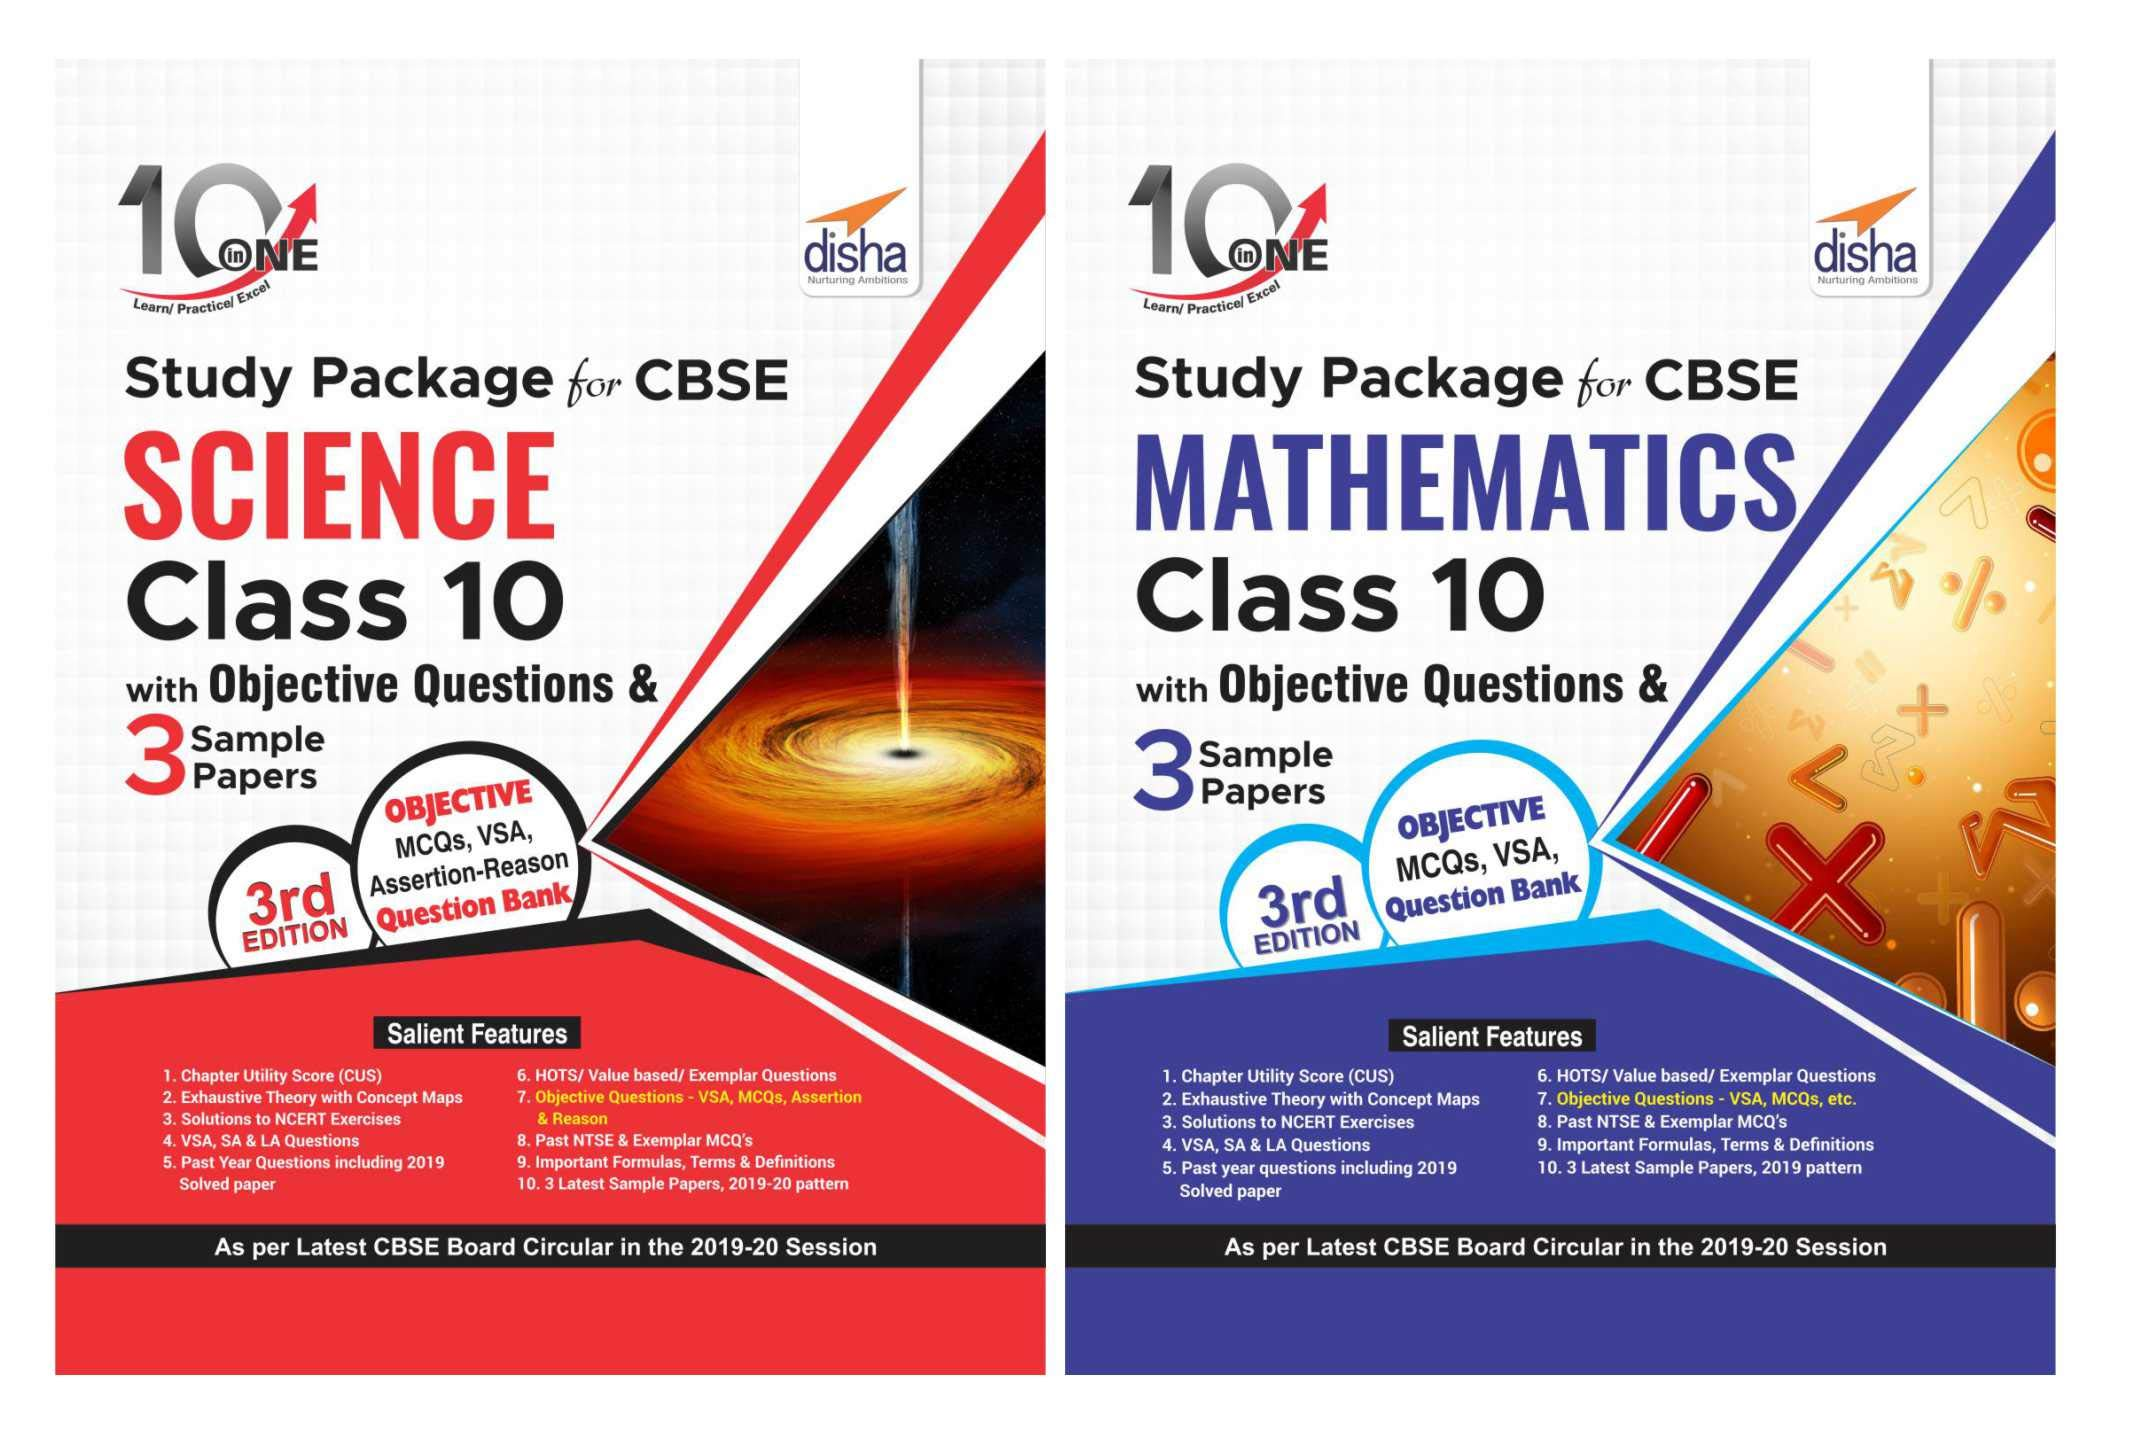 Combo 10 in One Study Package for CBSE Science & Mathematics